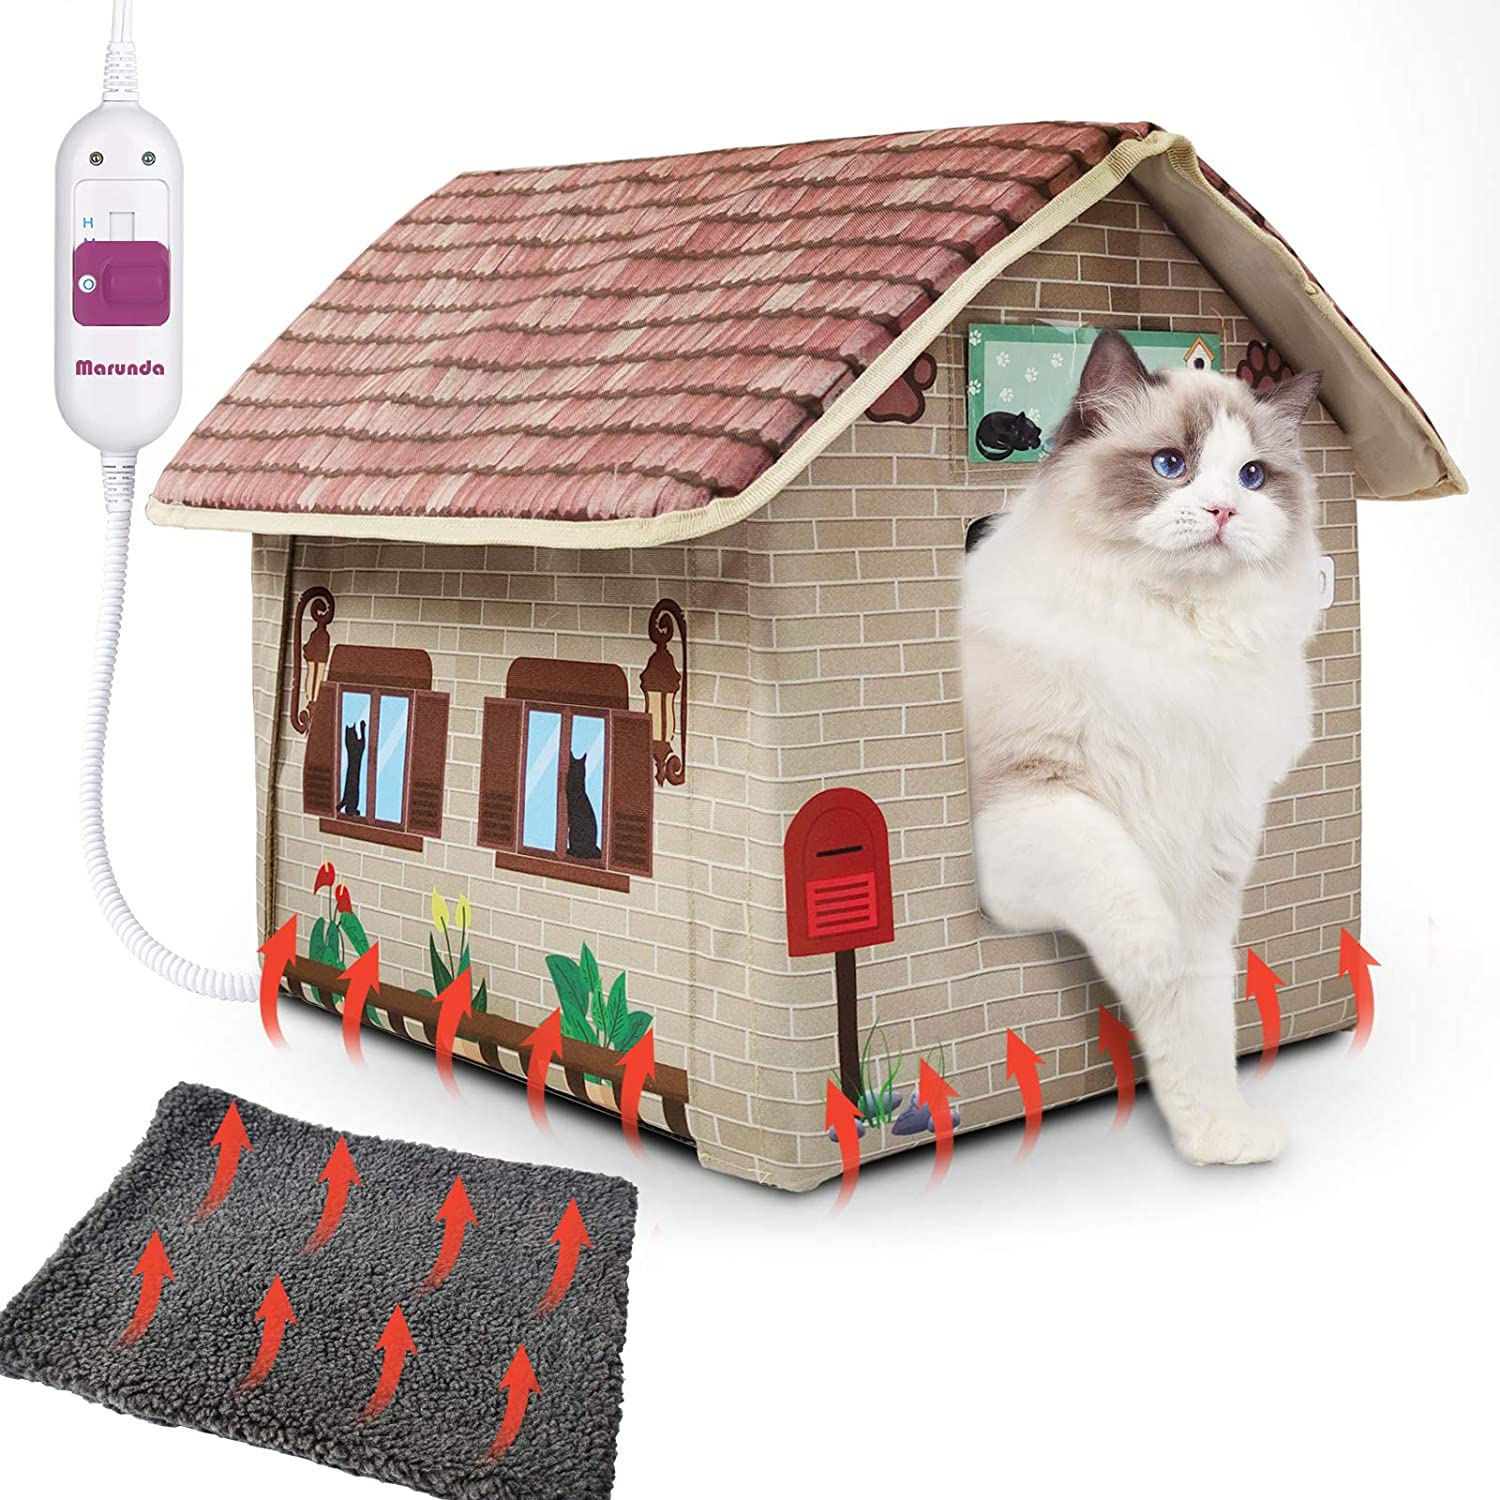 Marunda Heated Cat Houses For Indoor Or Outdoor Cats In Winter Waterproof And Insulated A Safe Pet House And Kitty Shelter For Your Cat Or Small Dog To Stay Warm